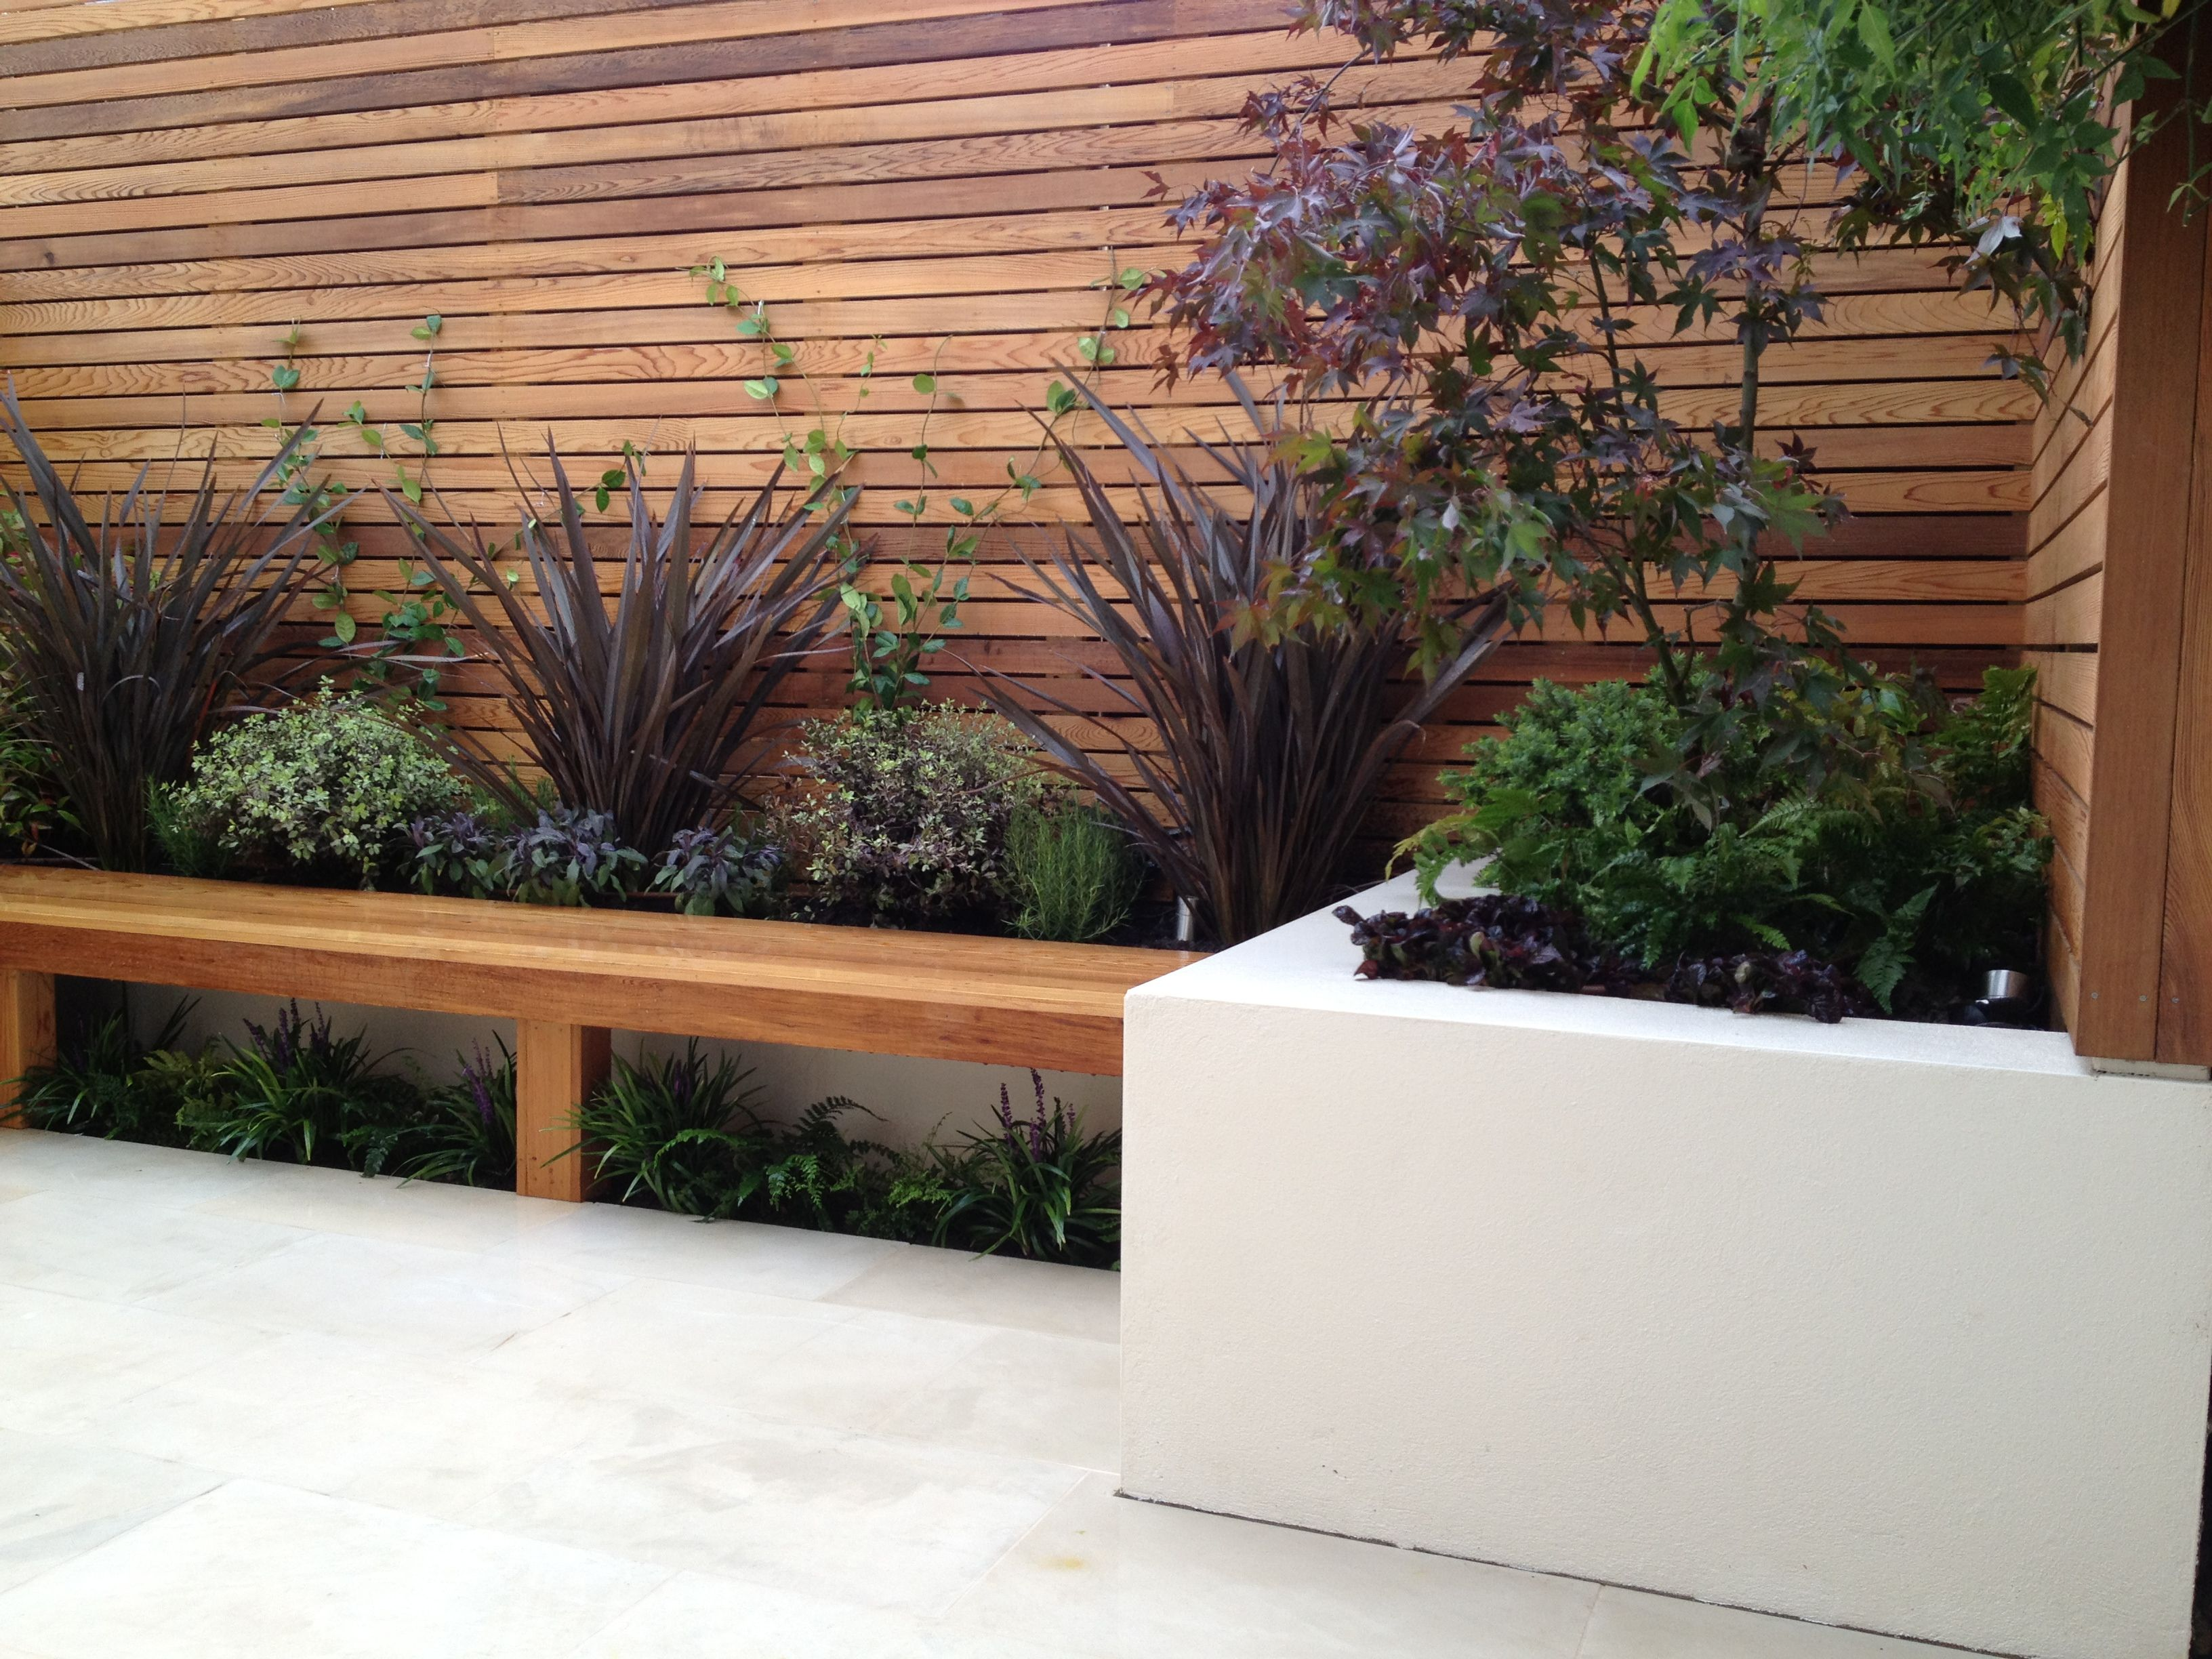 Integrating planter and bench seating garden design in london contemporary garden design london - Garden ideas london ...